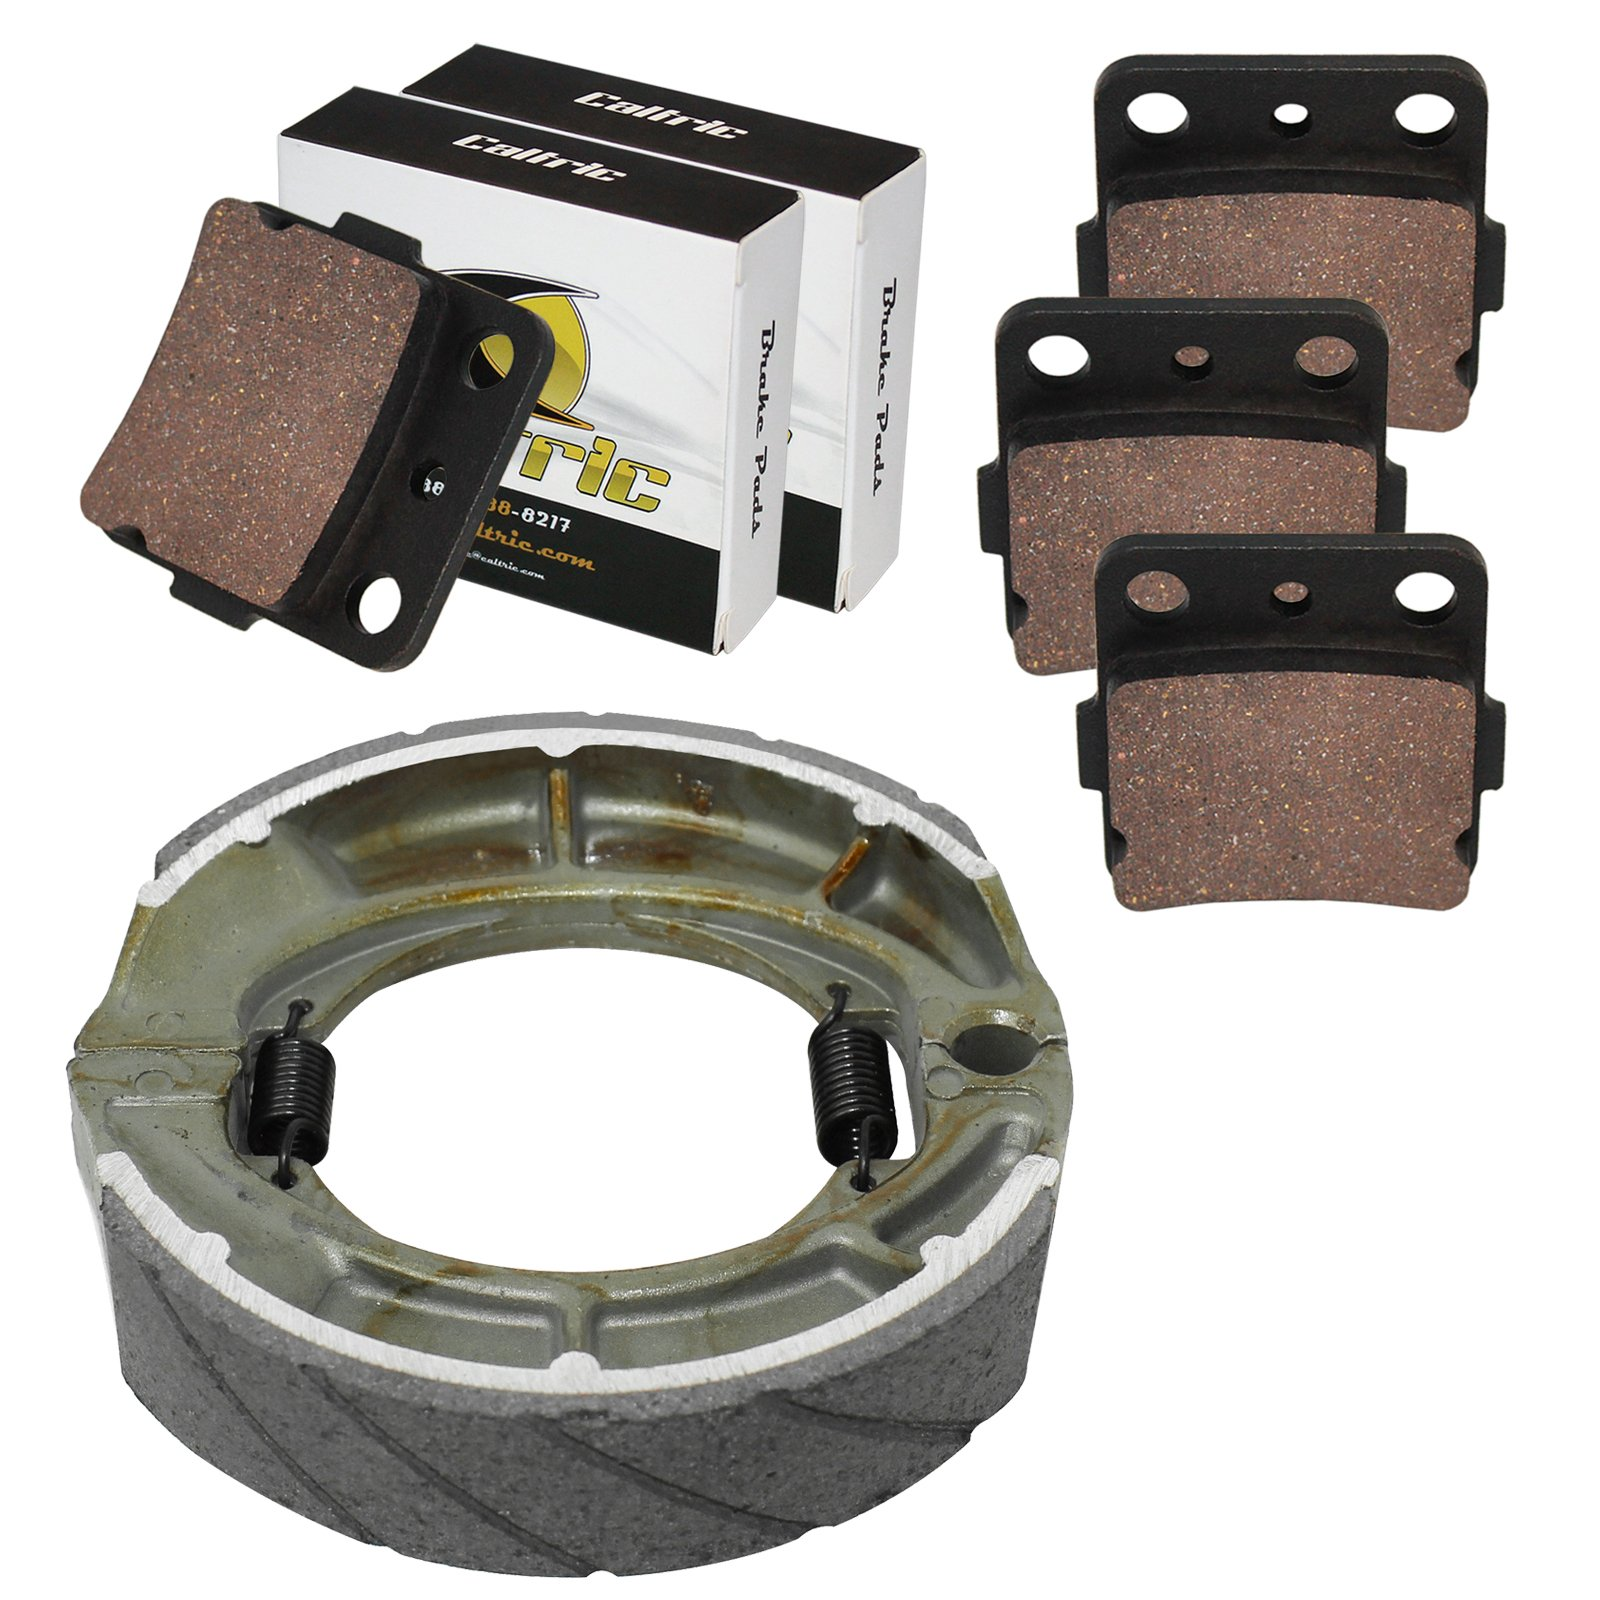 CALTRIC FRONT BRAKE PADS and REAR BRAKE SHOES Fits SUZUKI LT-F250 Ozark 250 2007-2014